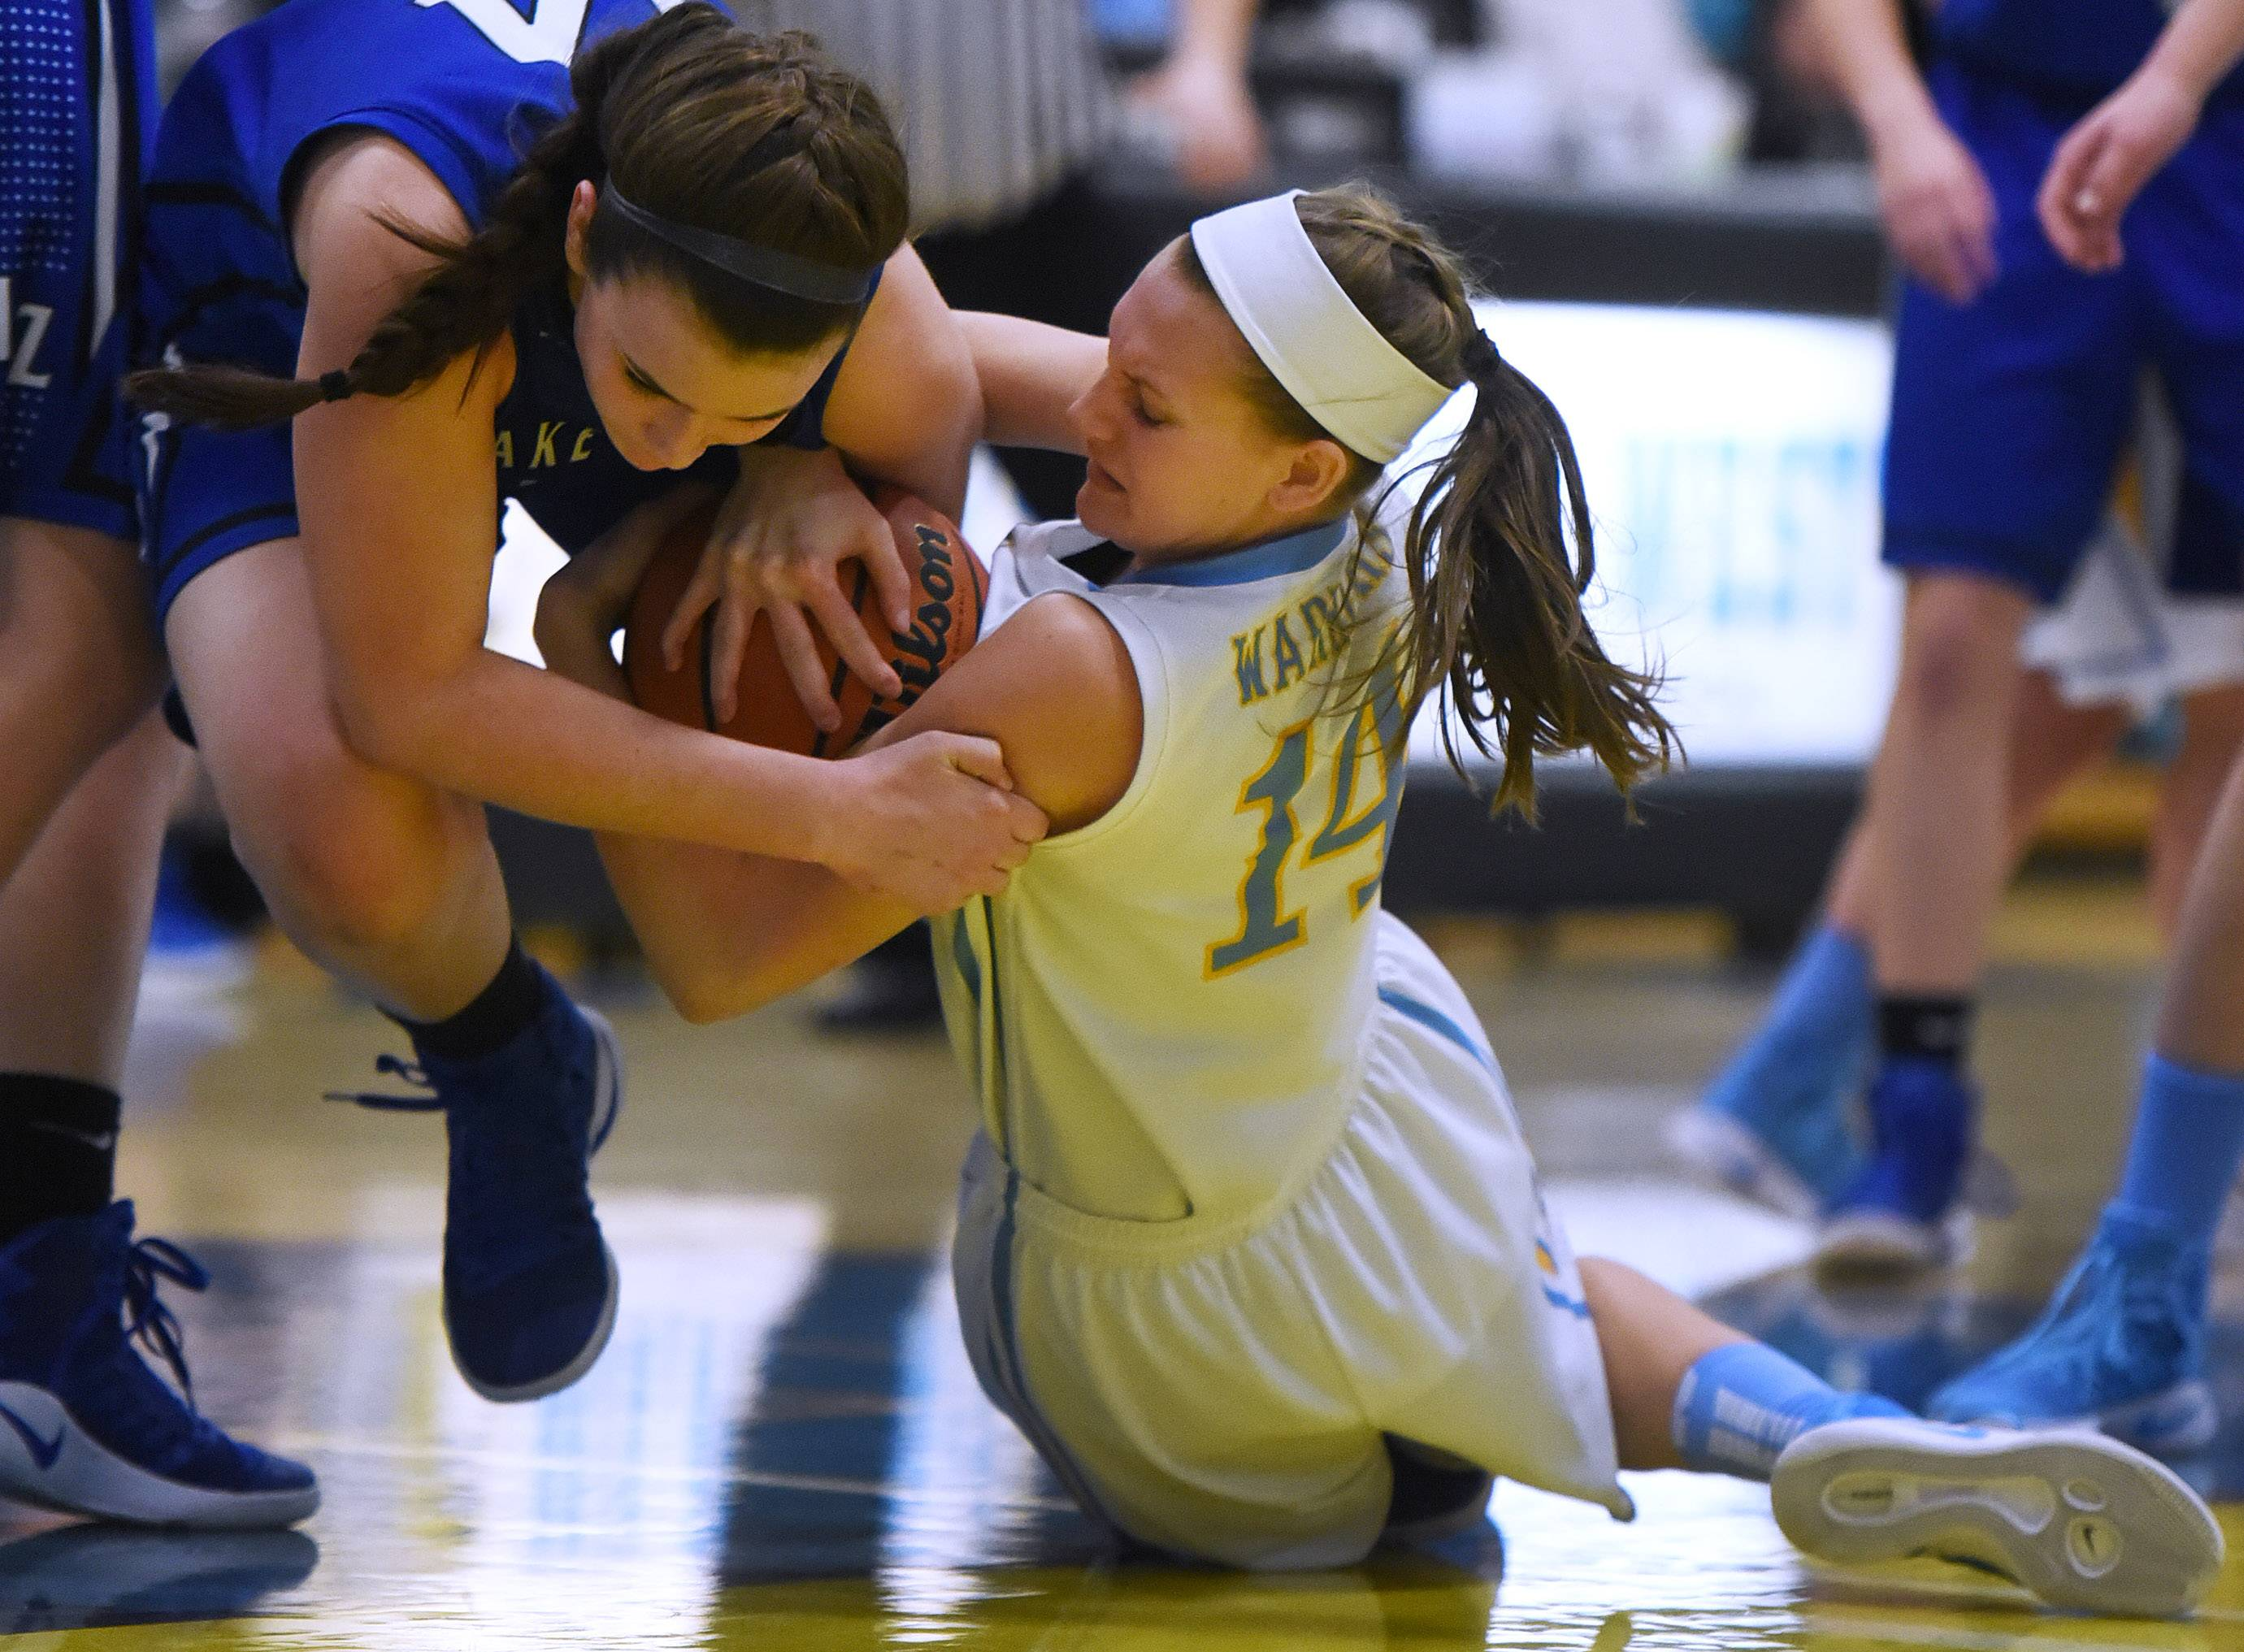 Maine West's Catherine Johnson (14) fights for the ball with Lake Zurich's McKenna Zobel, left, during Monday's game in Des Plaines.